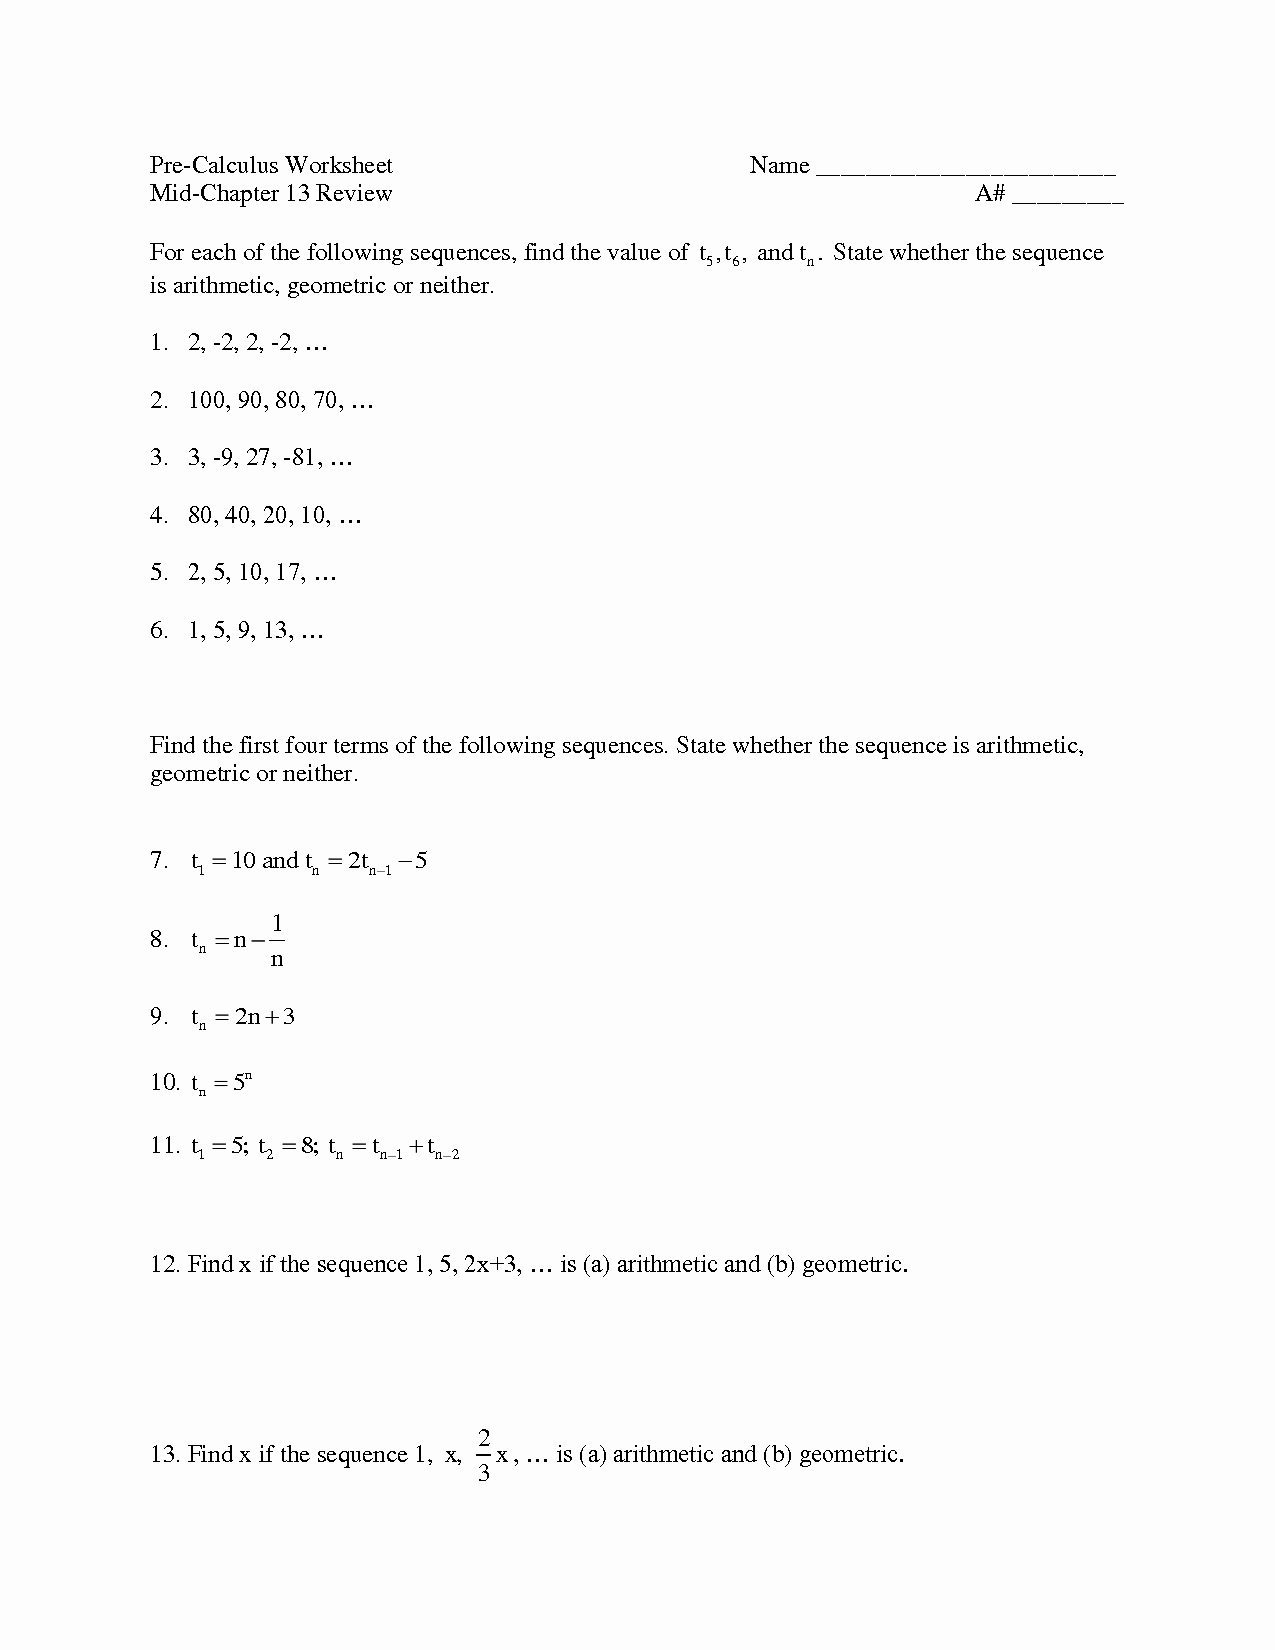 Arithmetic Sequences Worksheet Answers Lovely 51 Arithmetic Sequences and Series Worksheet Geometric